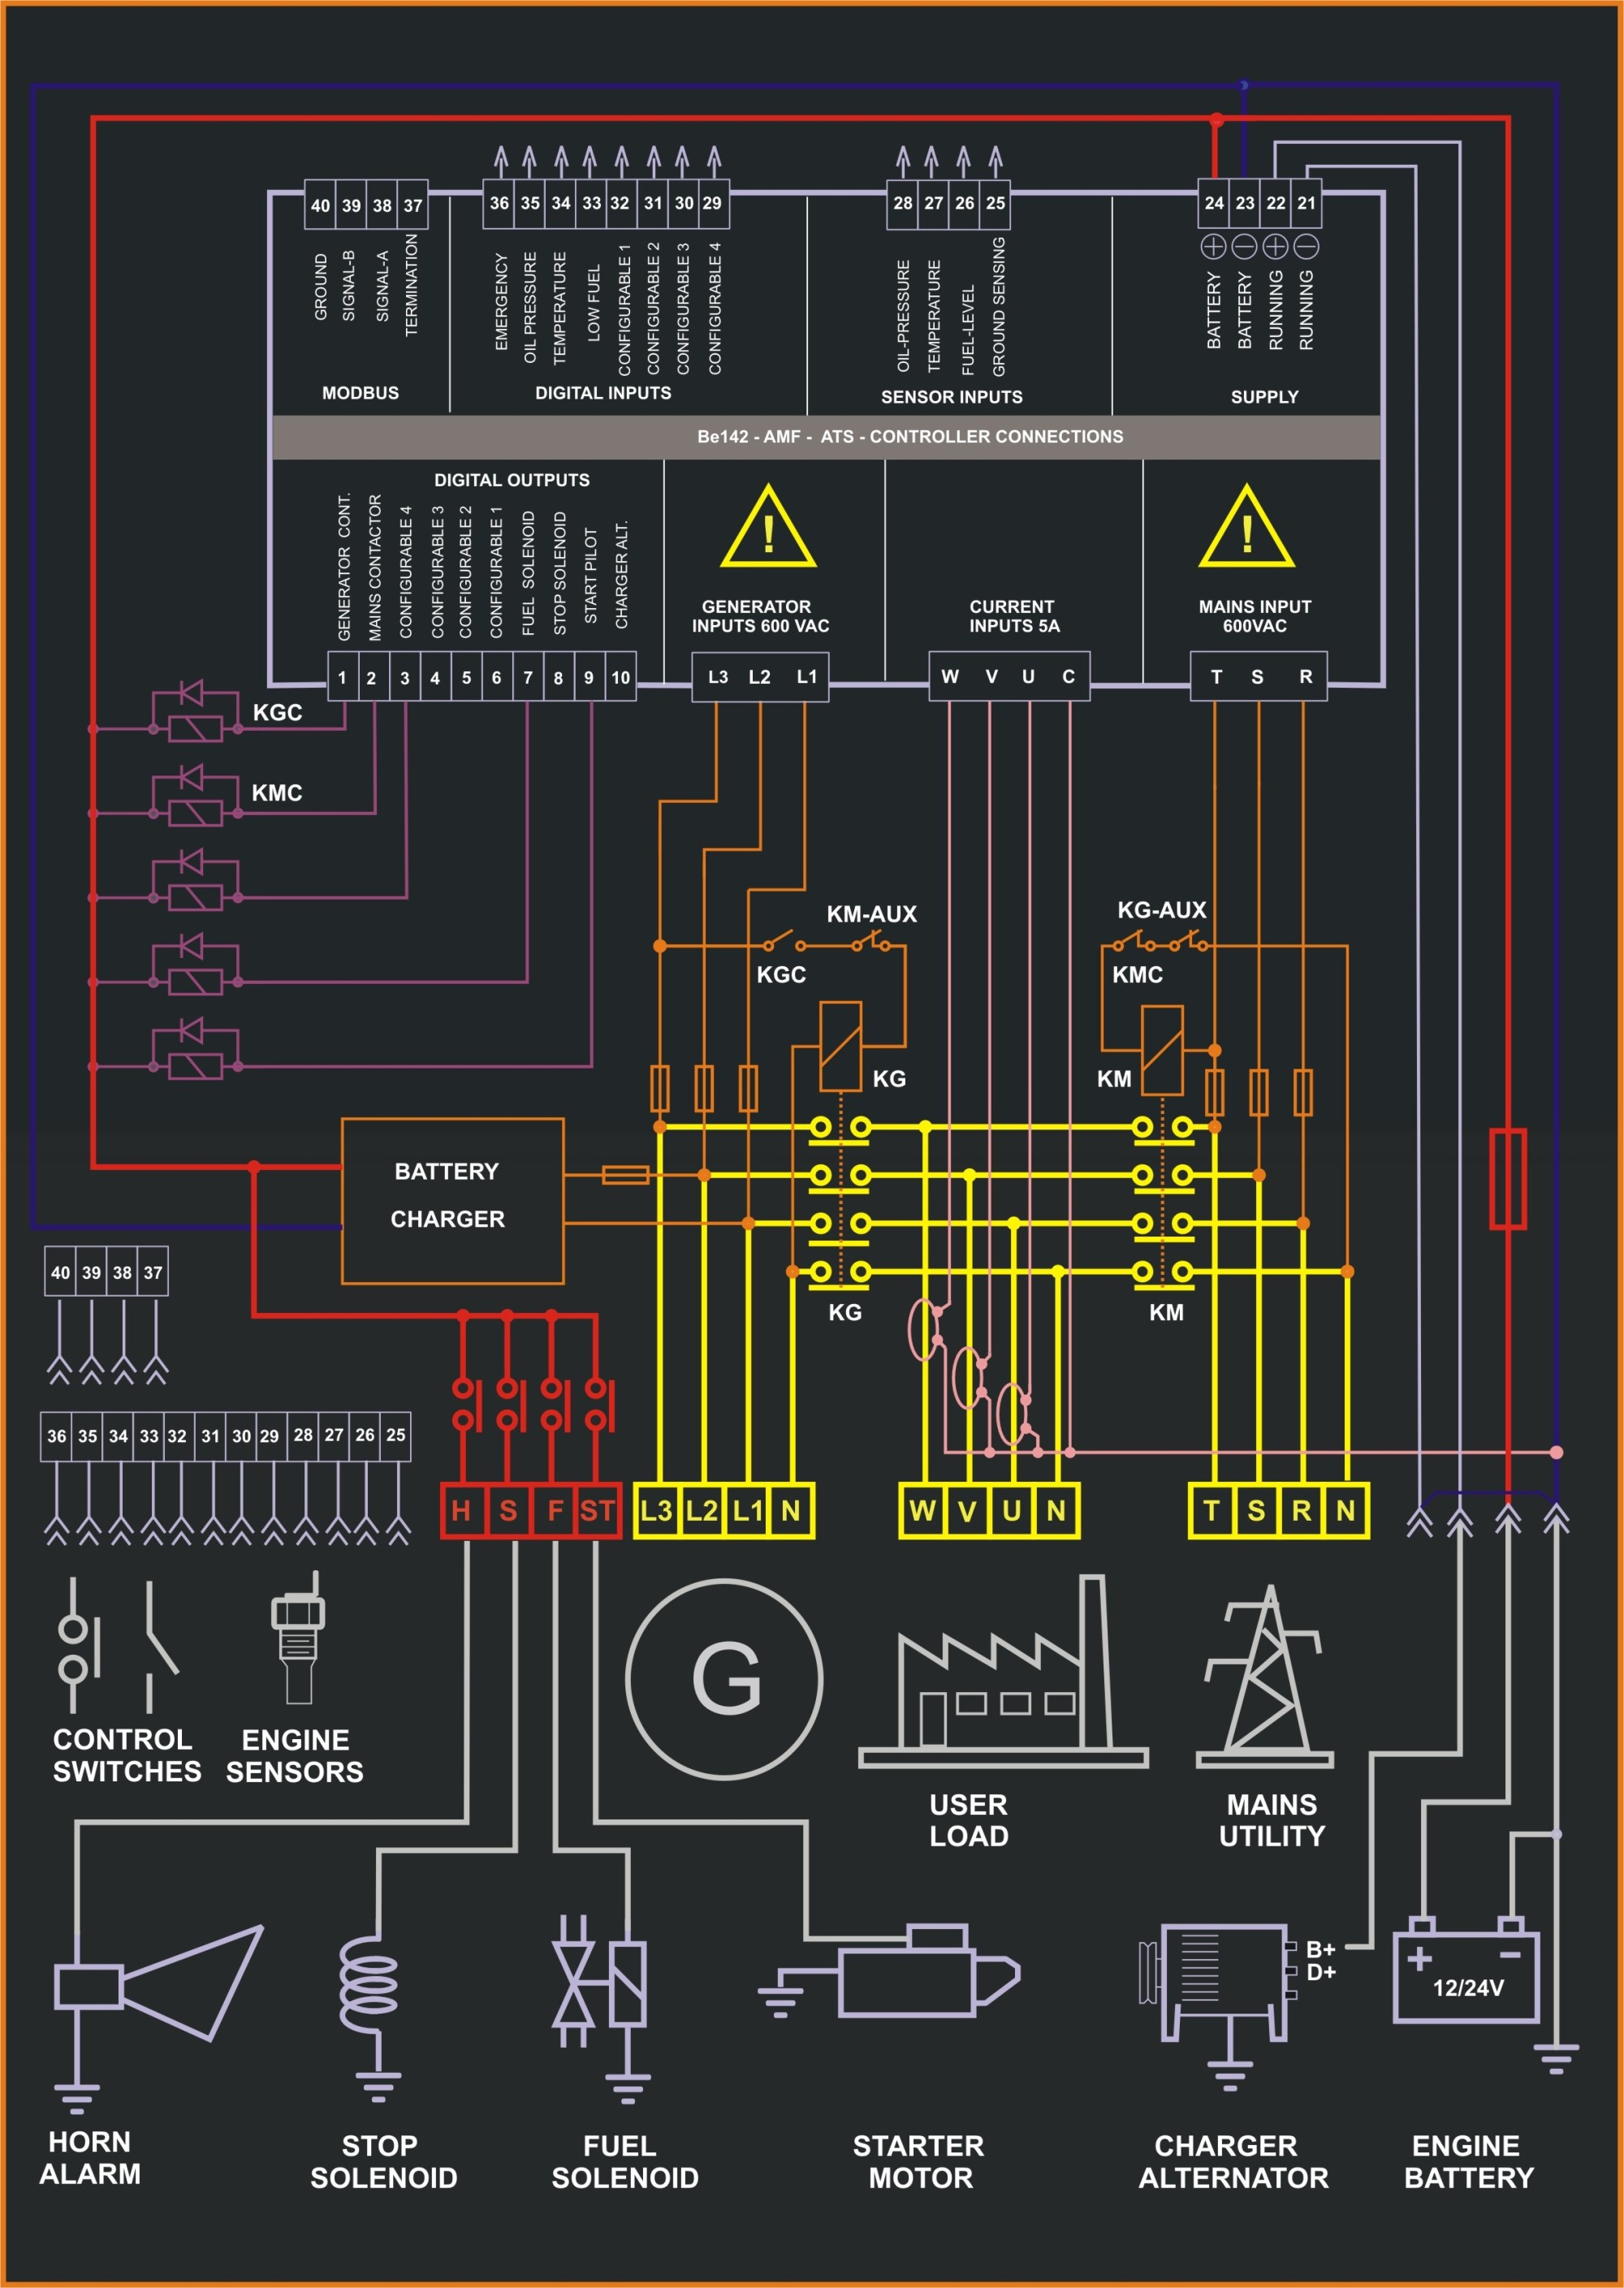 hight resolution of control panel circuit diagram